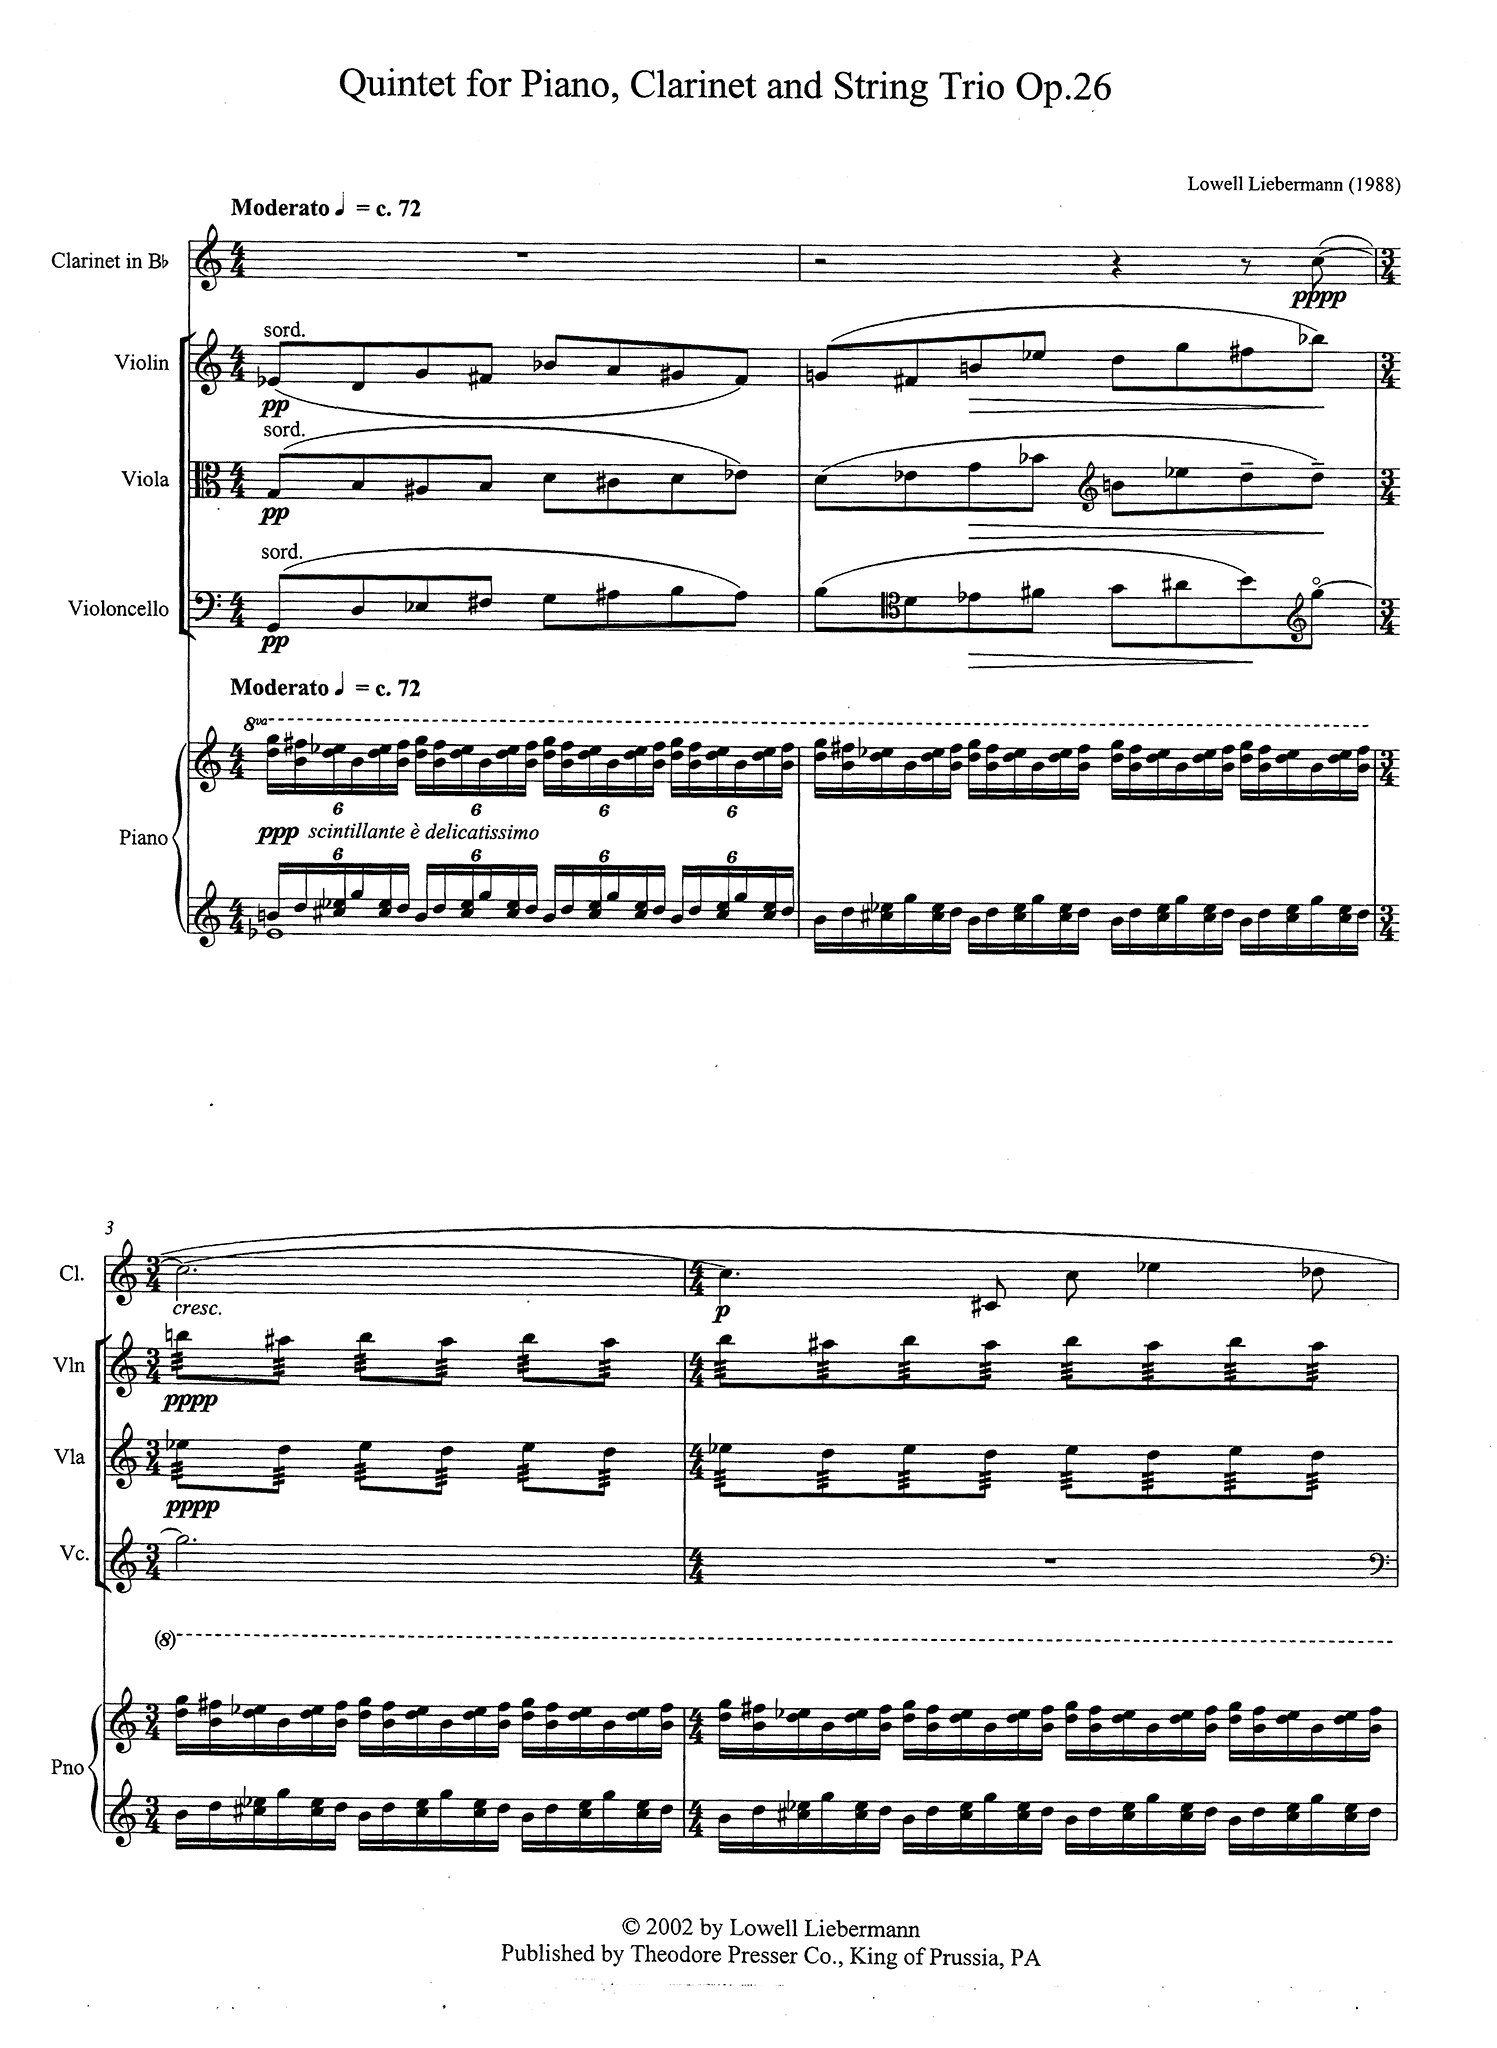 Quintet, Op. 26 - Movement 1